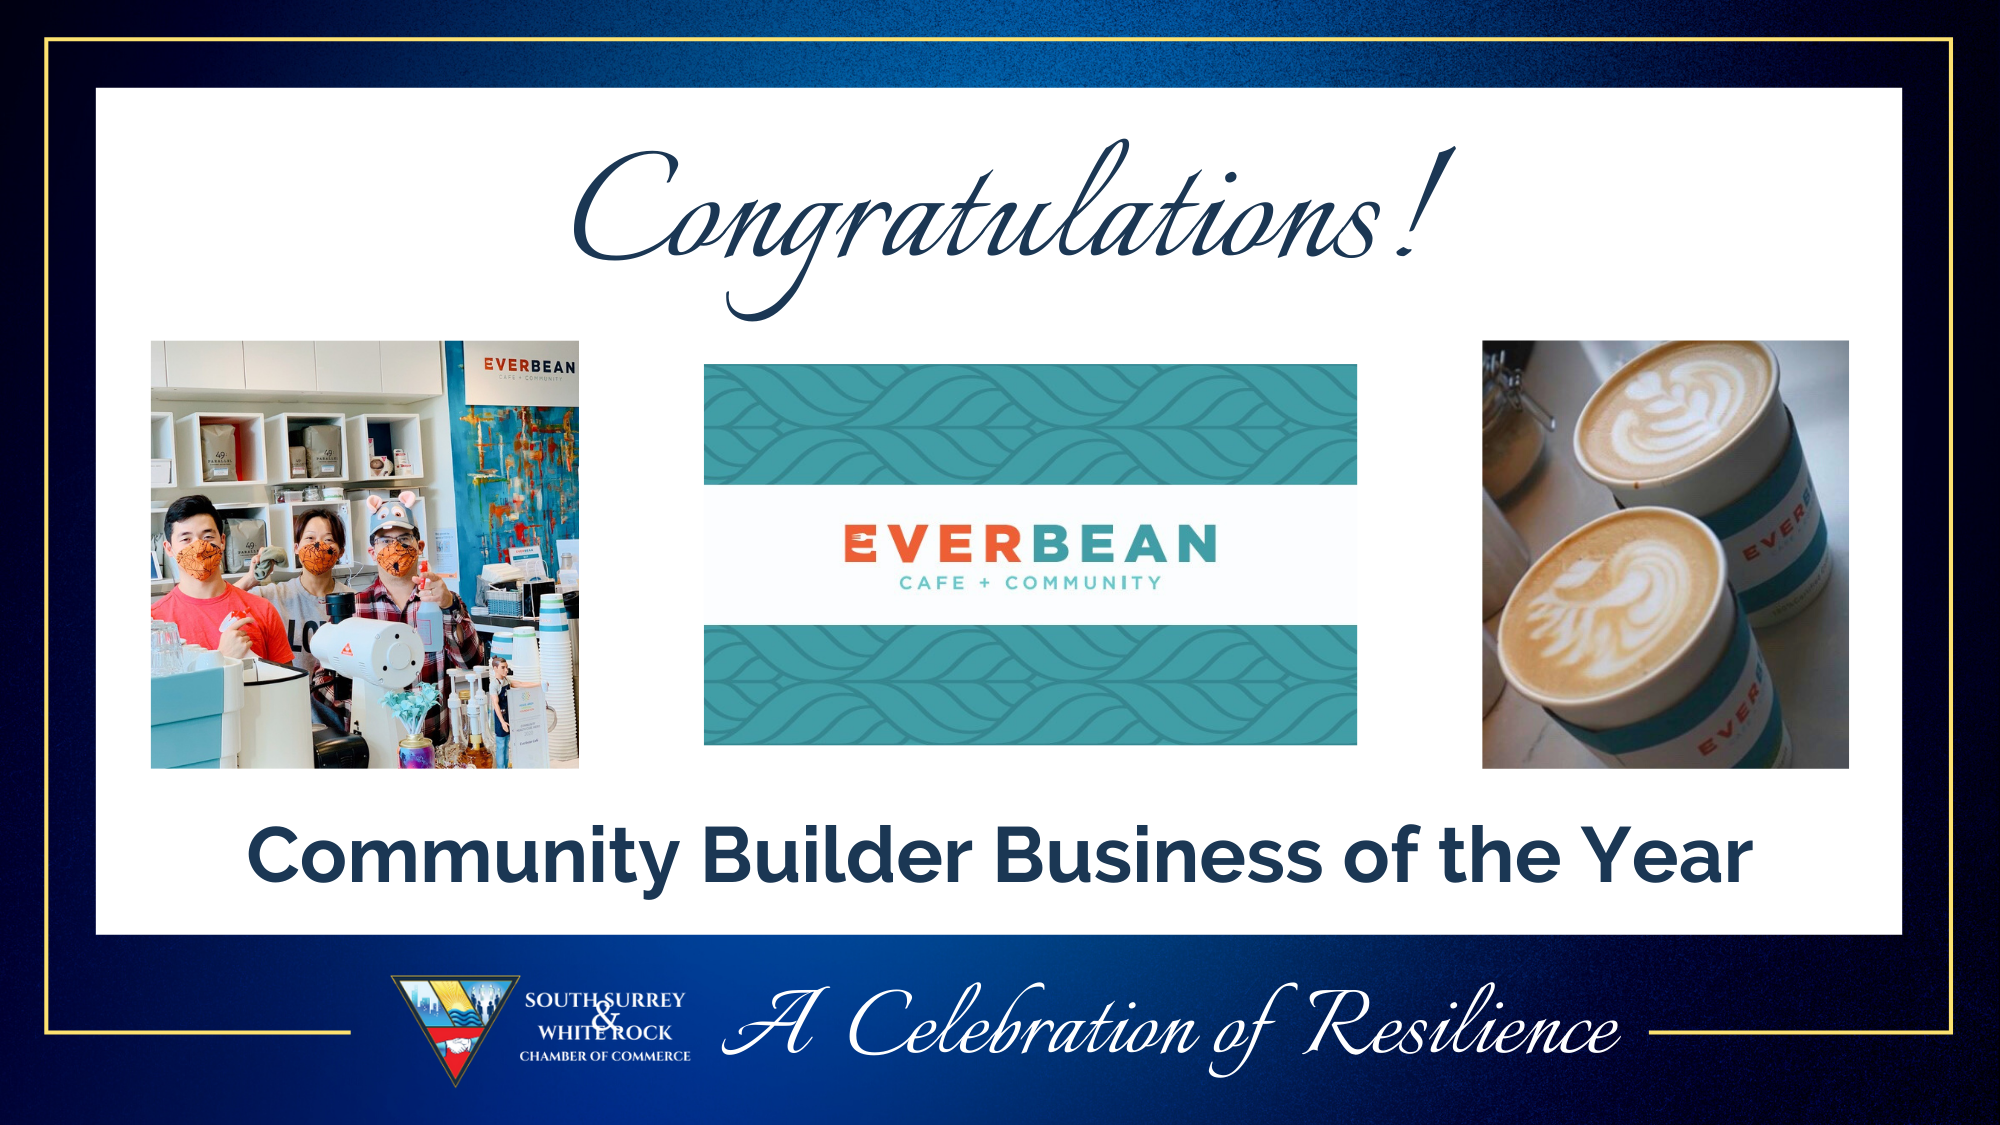 Congratulations-Community-Builder-Business-of-the-Year.png